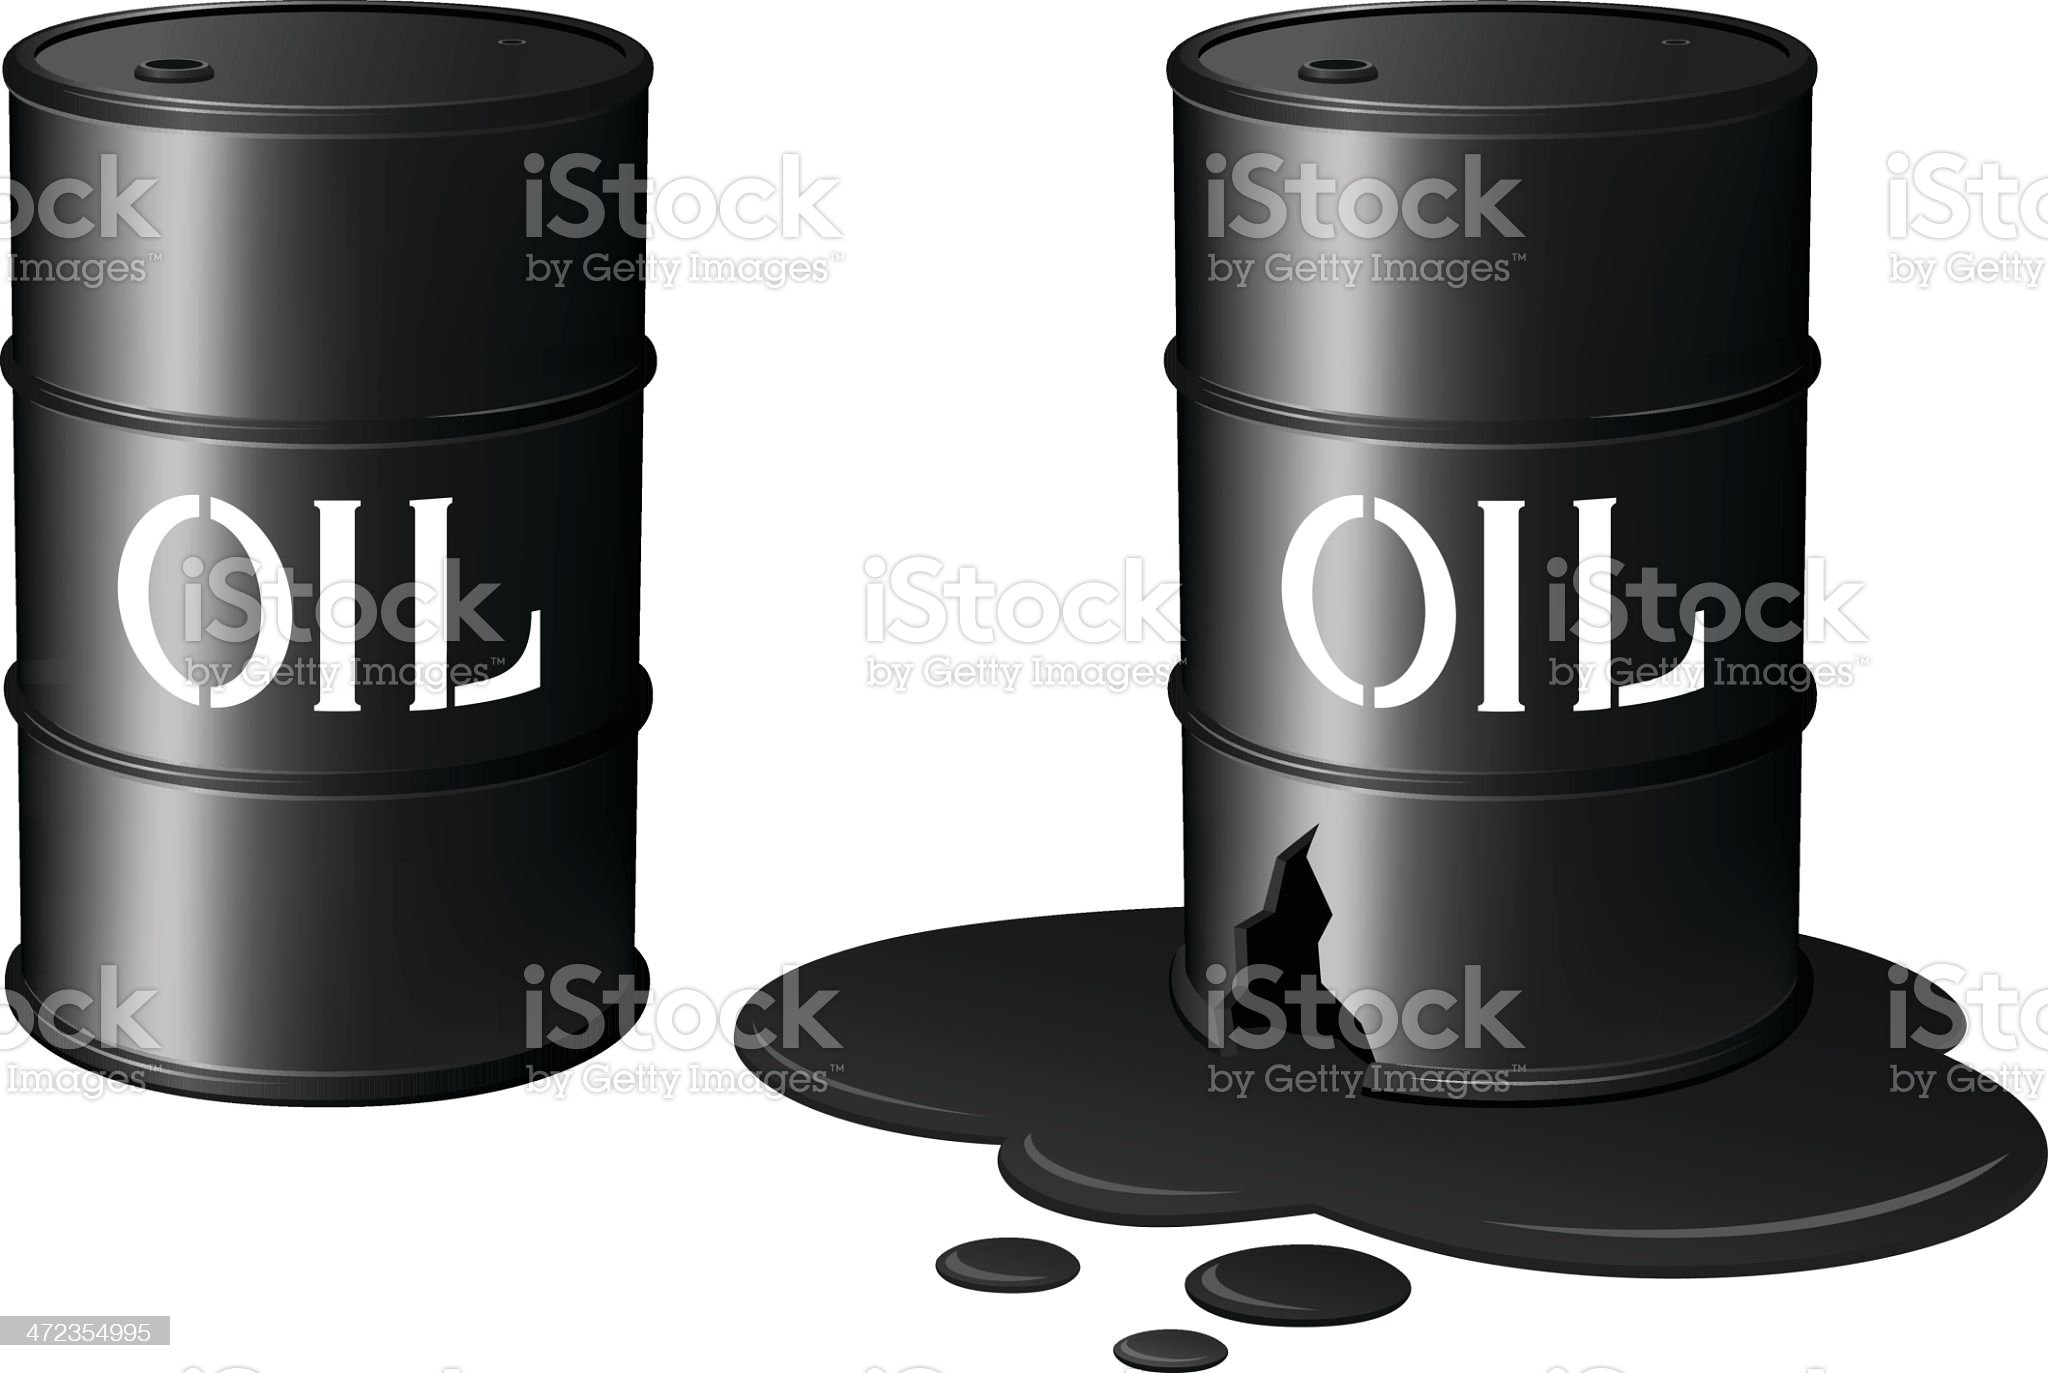 Oil Drums/Oil Spill royalty-free stock vector art